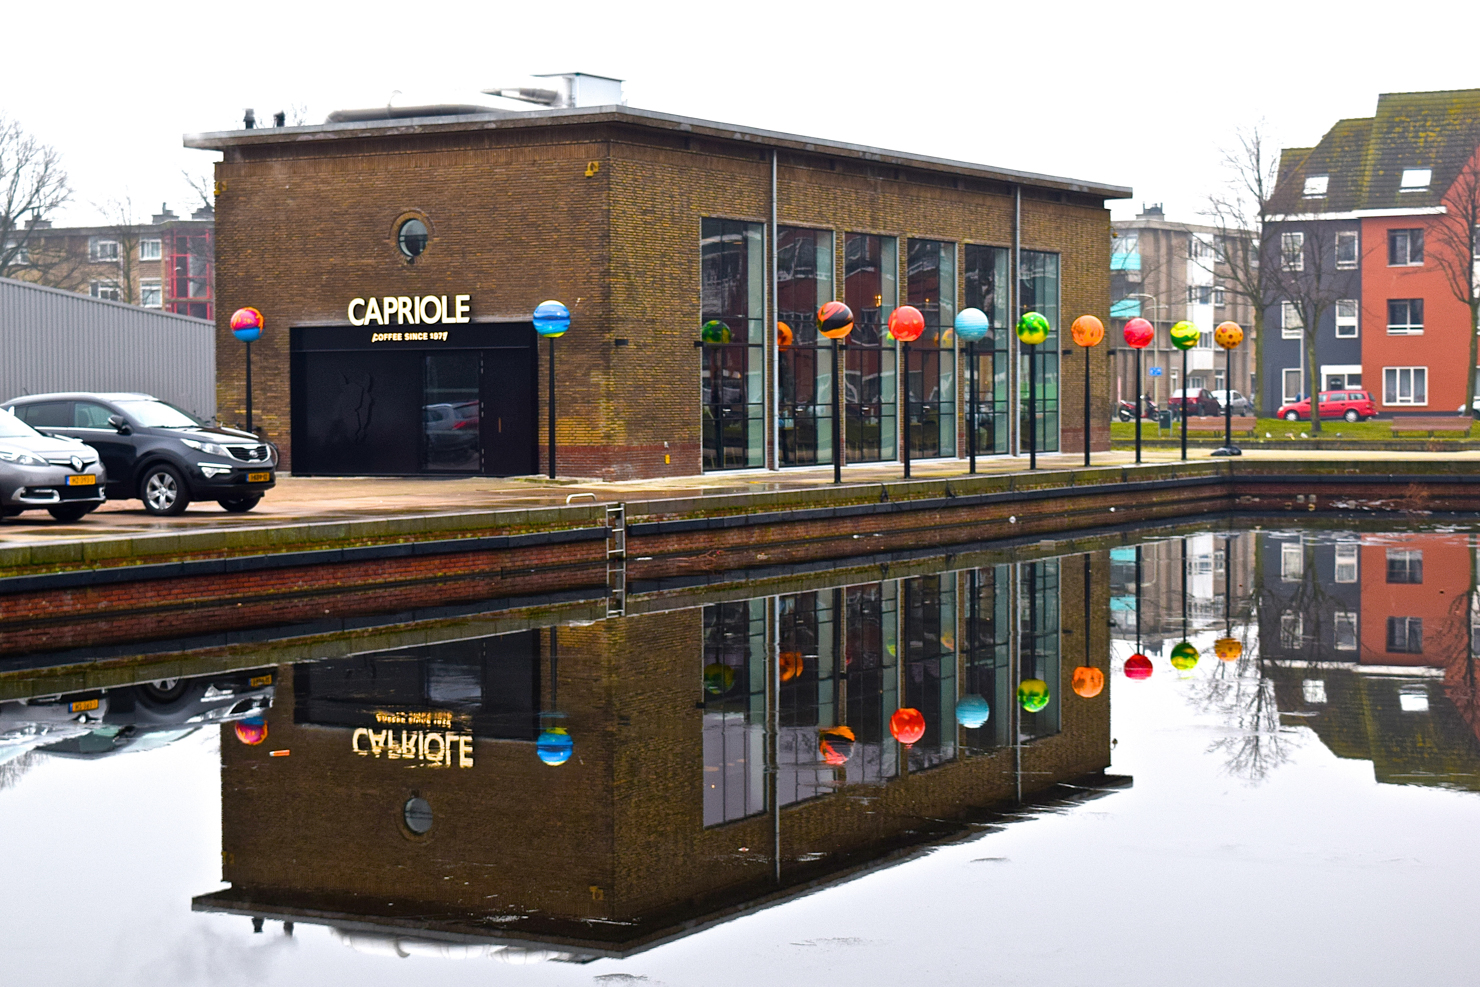 In The Hague, Capriole Café Goes From Supplier To Coffee Shop photo